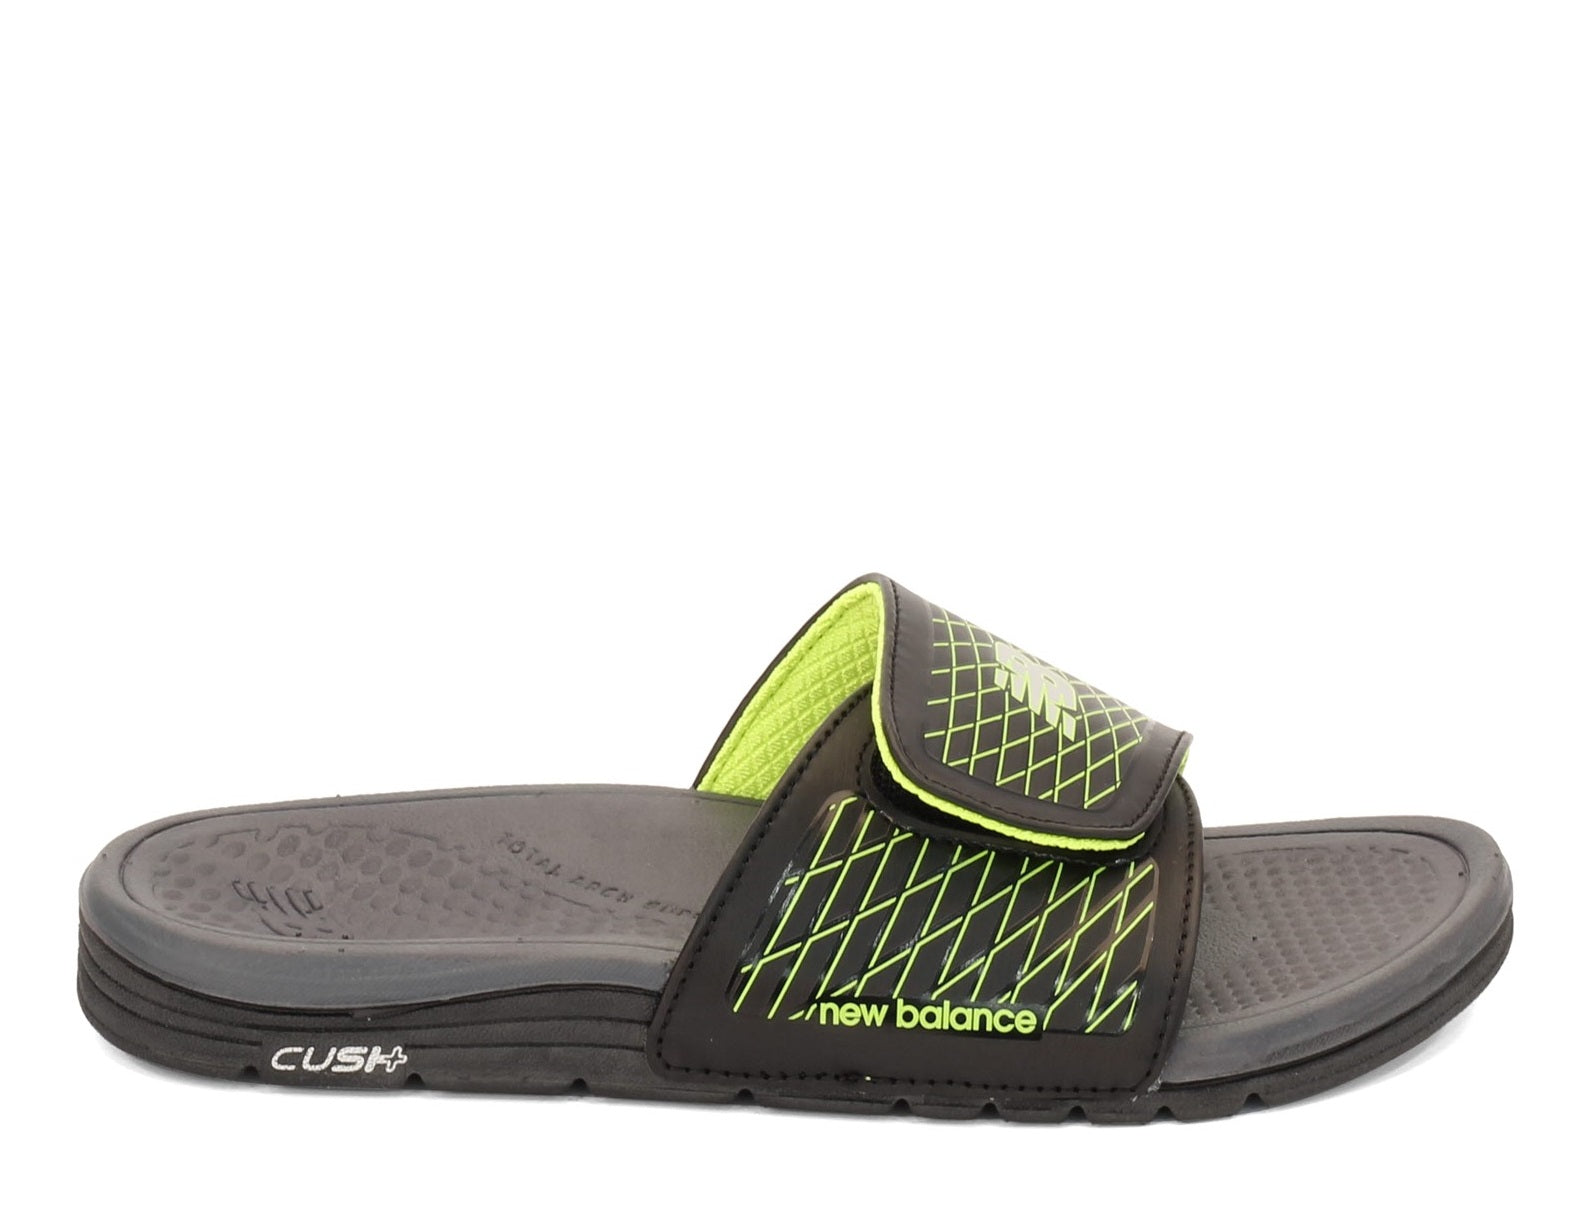 New Balance Mens 3064 Cush Slide Sandal - Black/Green